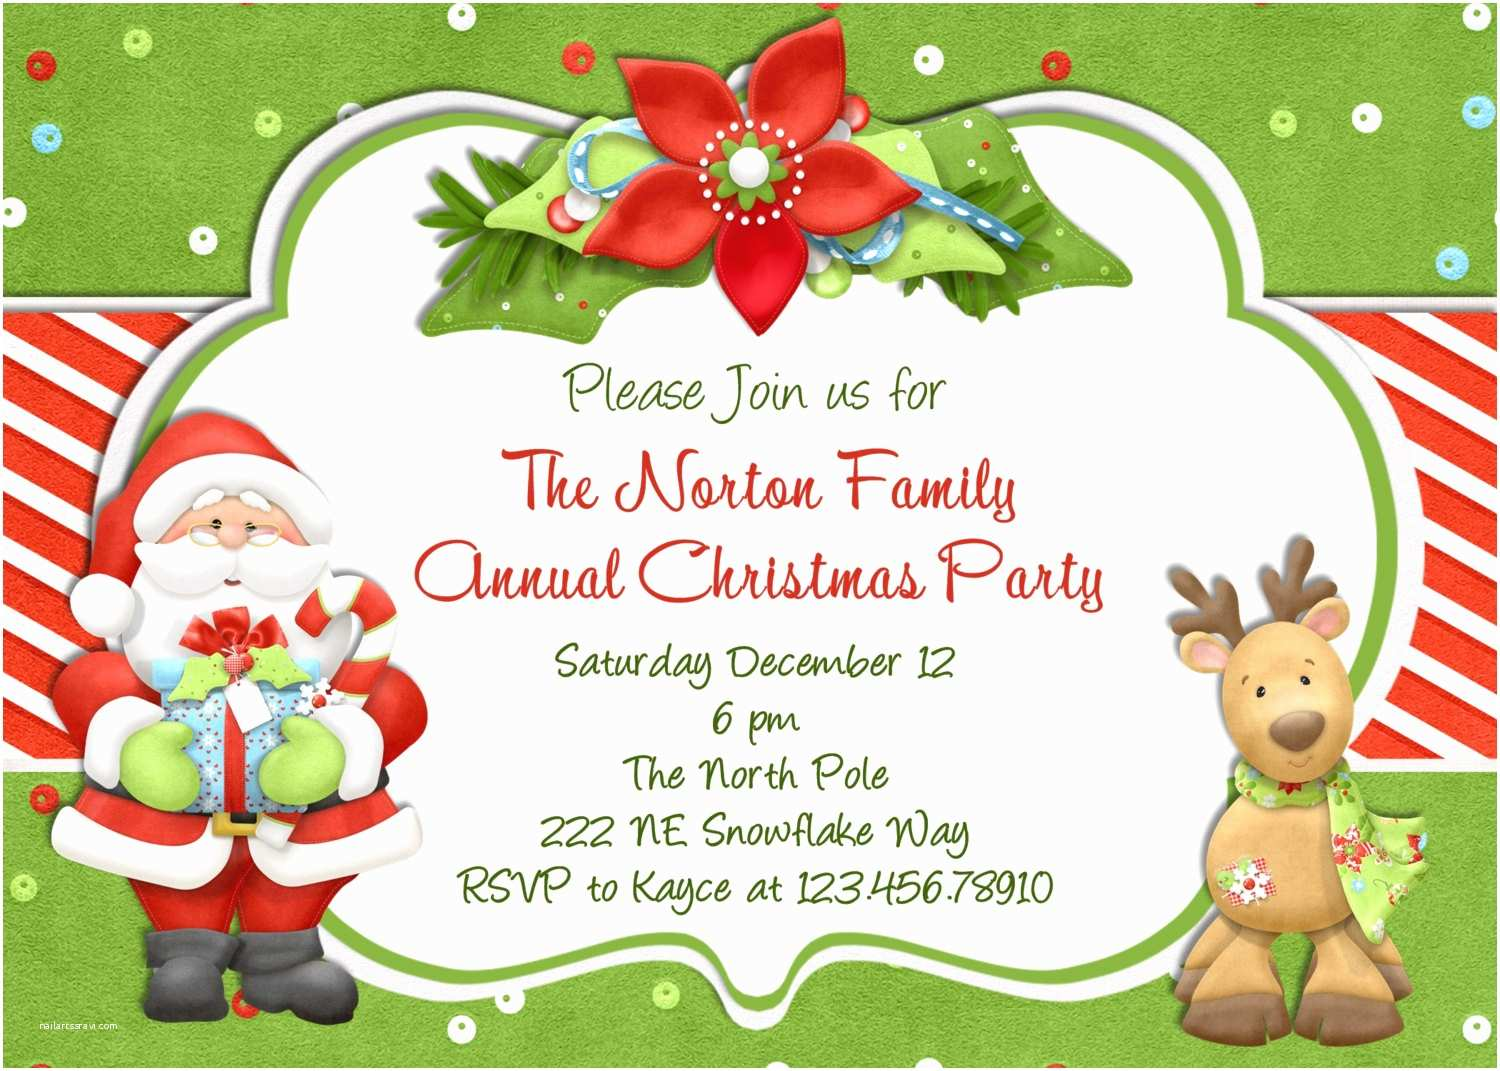 Holiday Party Invitation Christmas Party Invitation Christmas Holiday Party